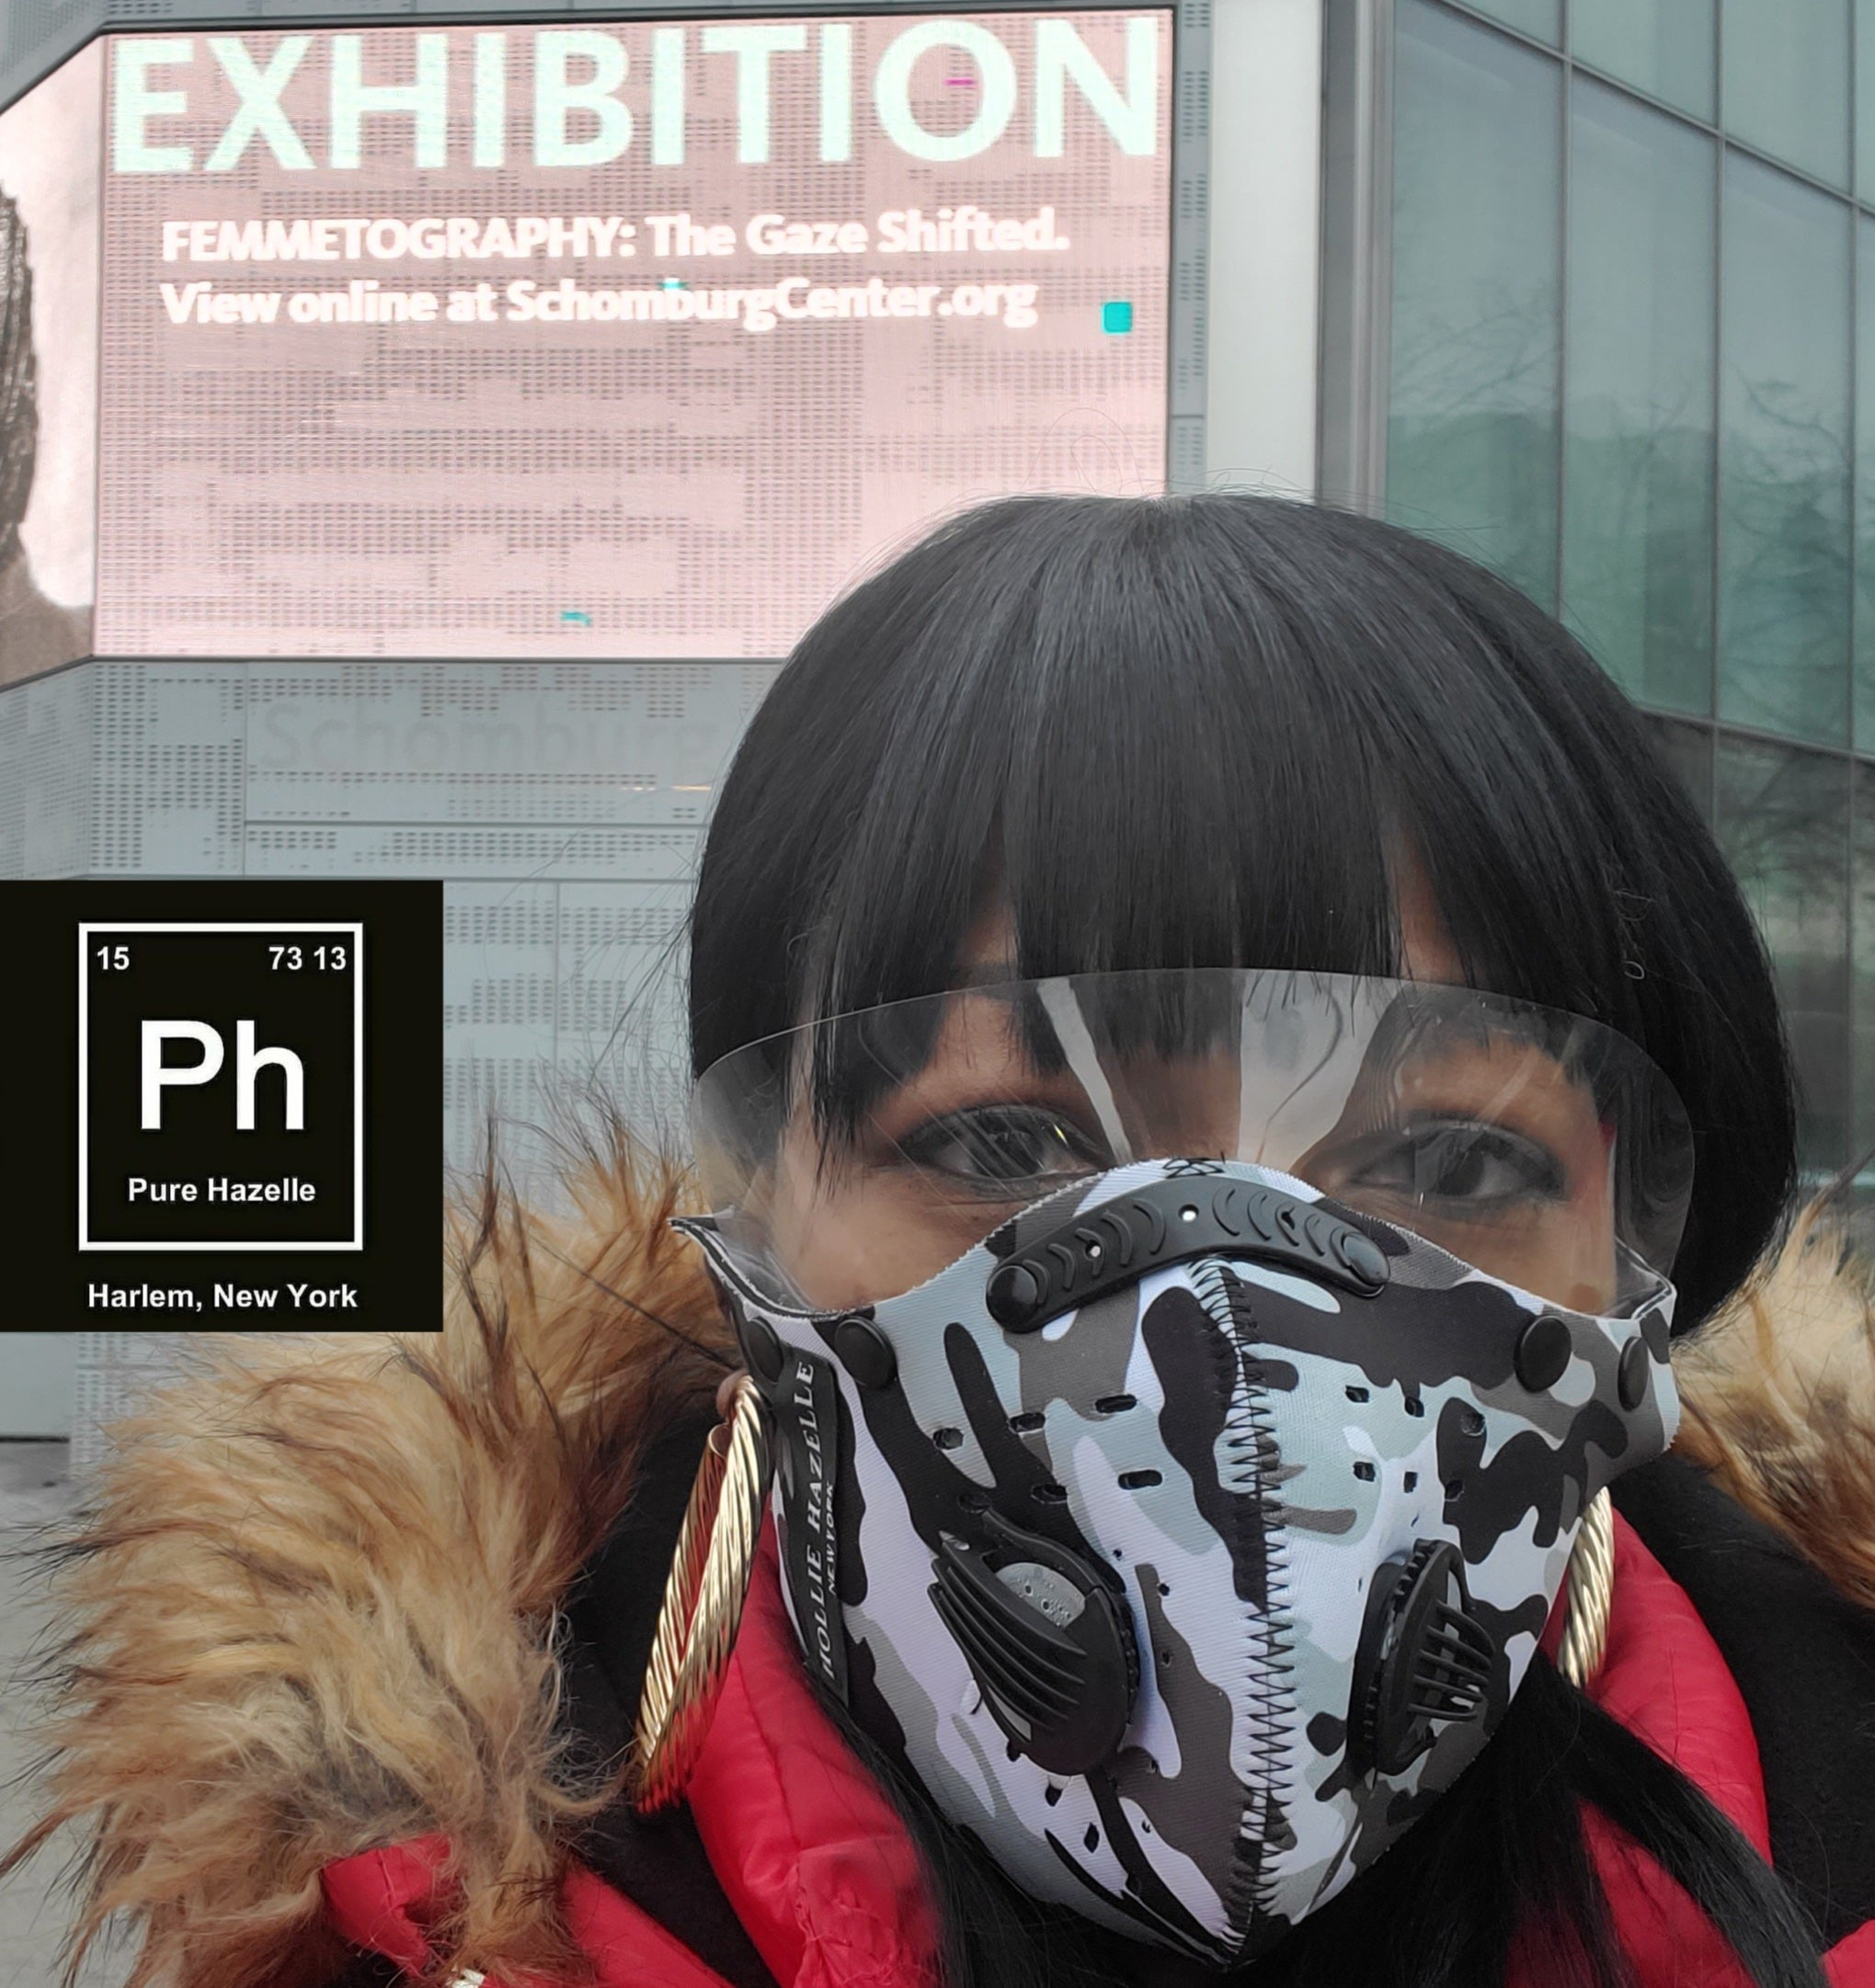 PH FULL FACE REUSABLE FACEMASK with Detachable EYE SHIELD #PHFM3